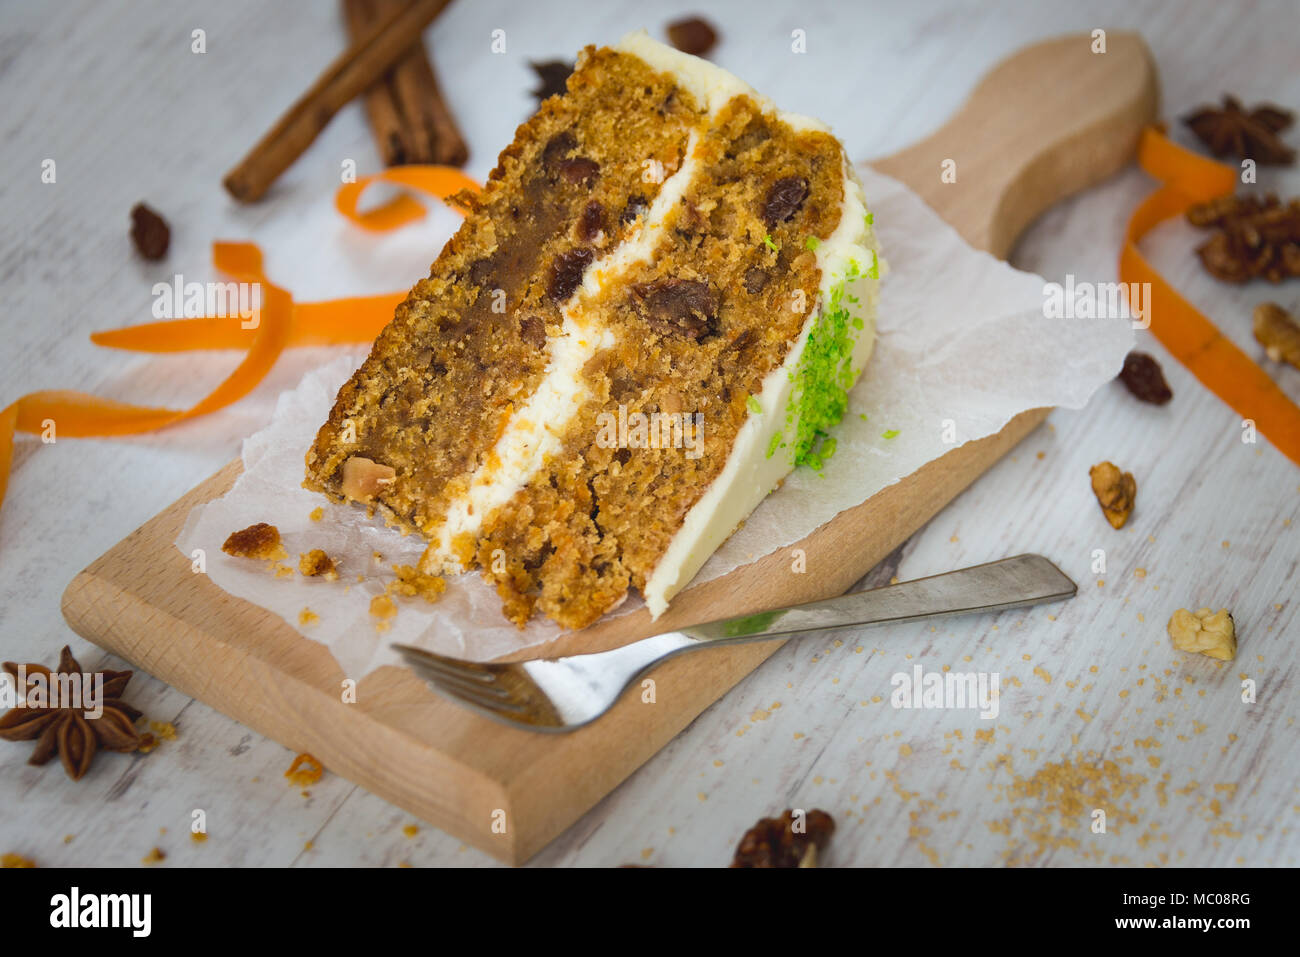 Close up of a homemade carrot cake with raisins, walnuts and cinnamon over white wooden background. Cream cheese frosting. - Stock Image